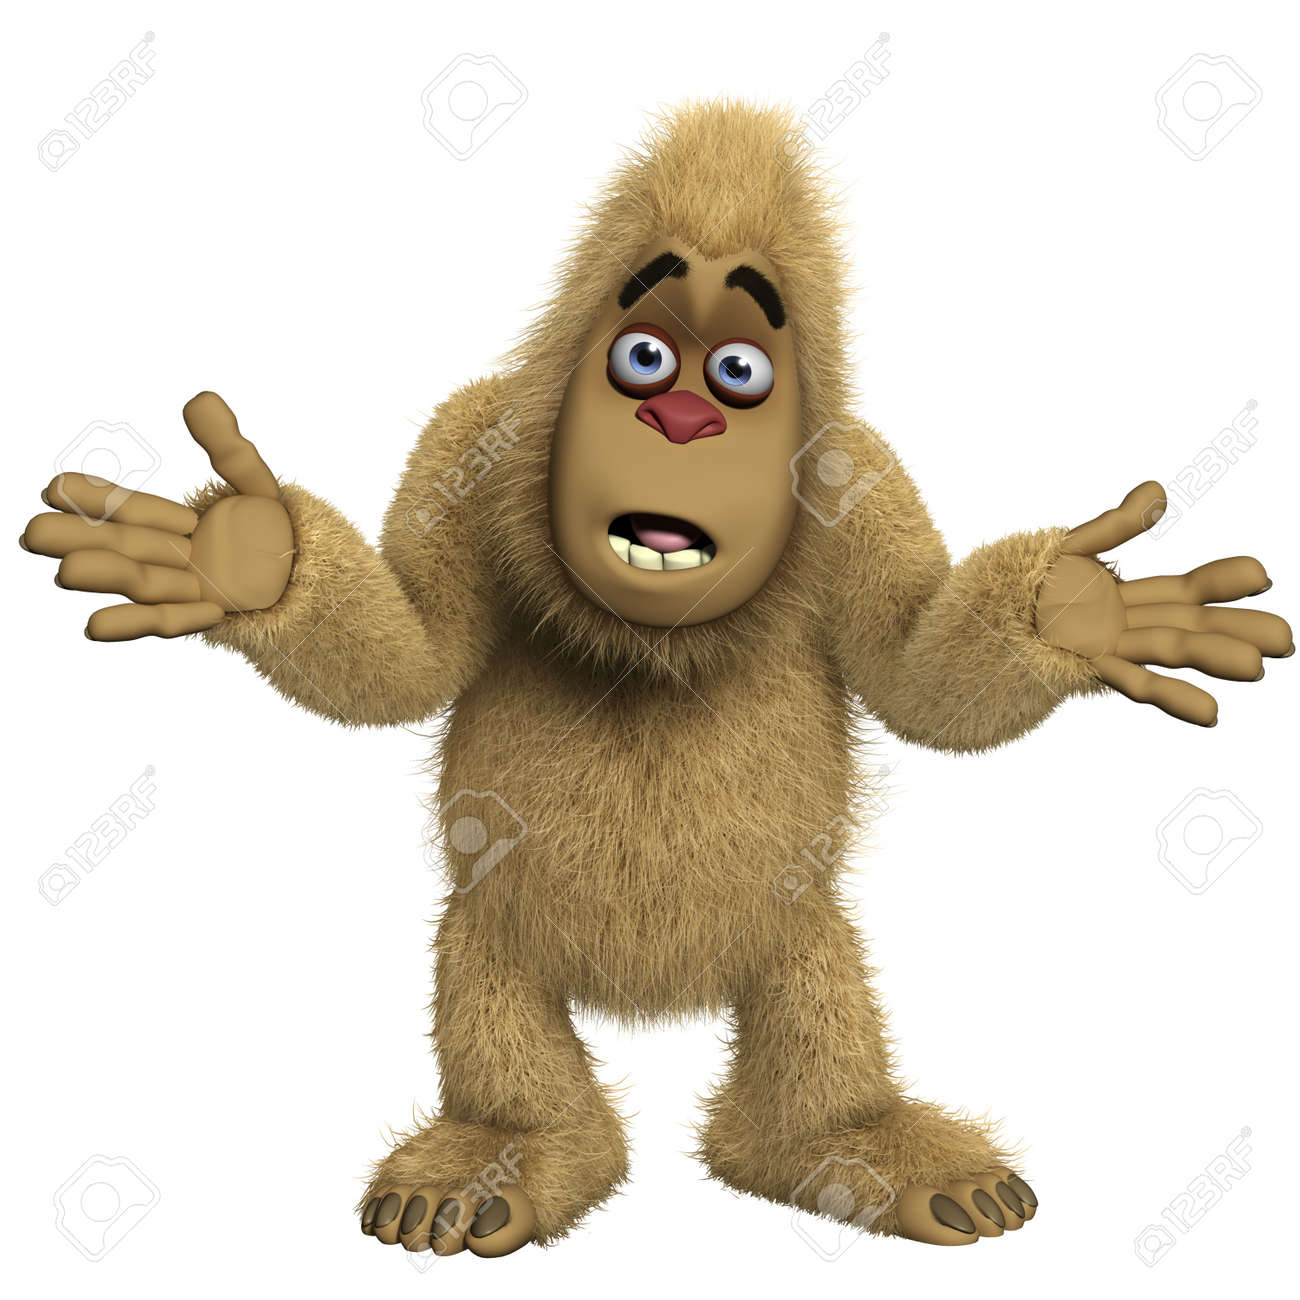 D cartoon yeti stock photo picture and royalty free image image